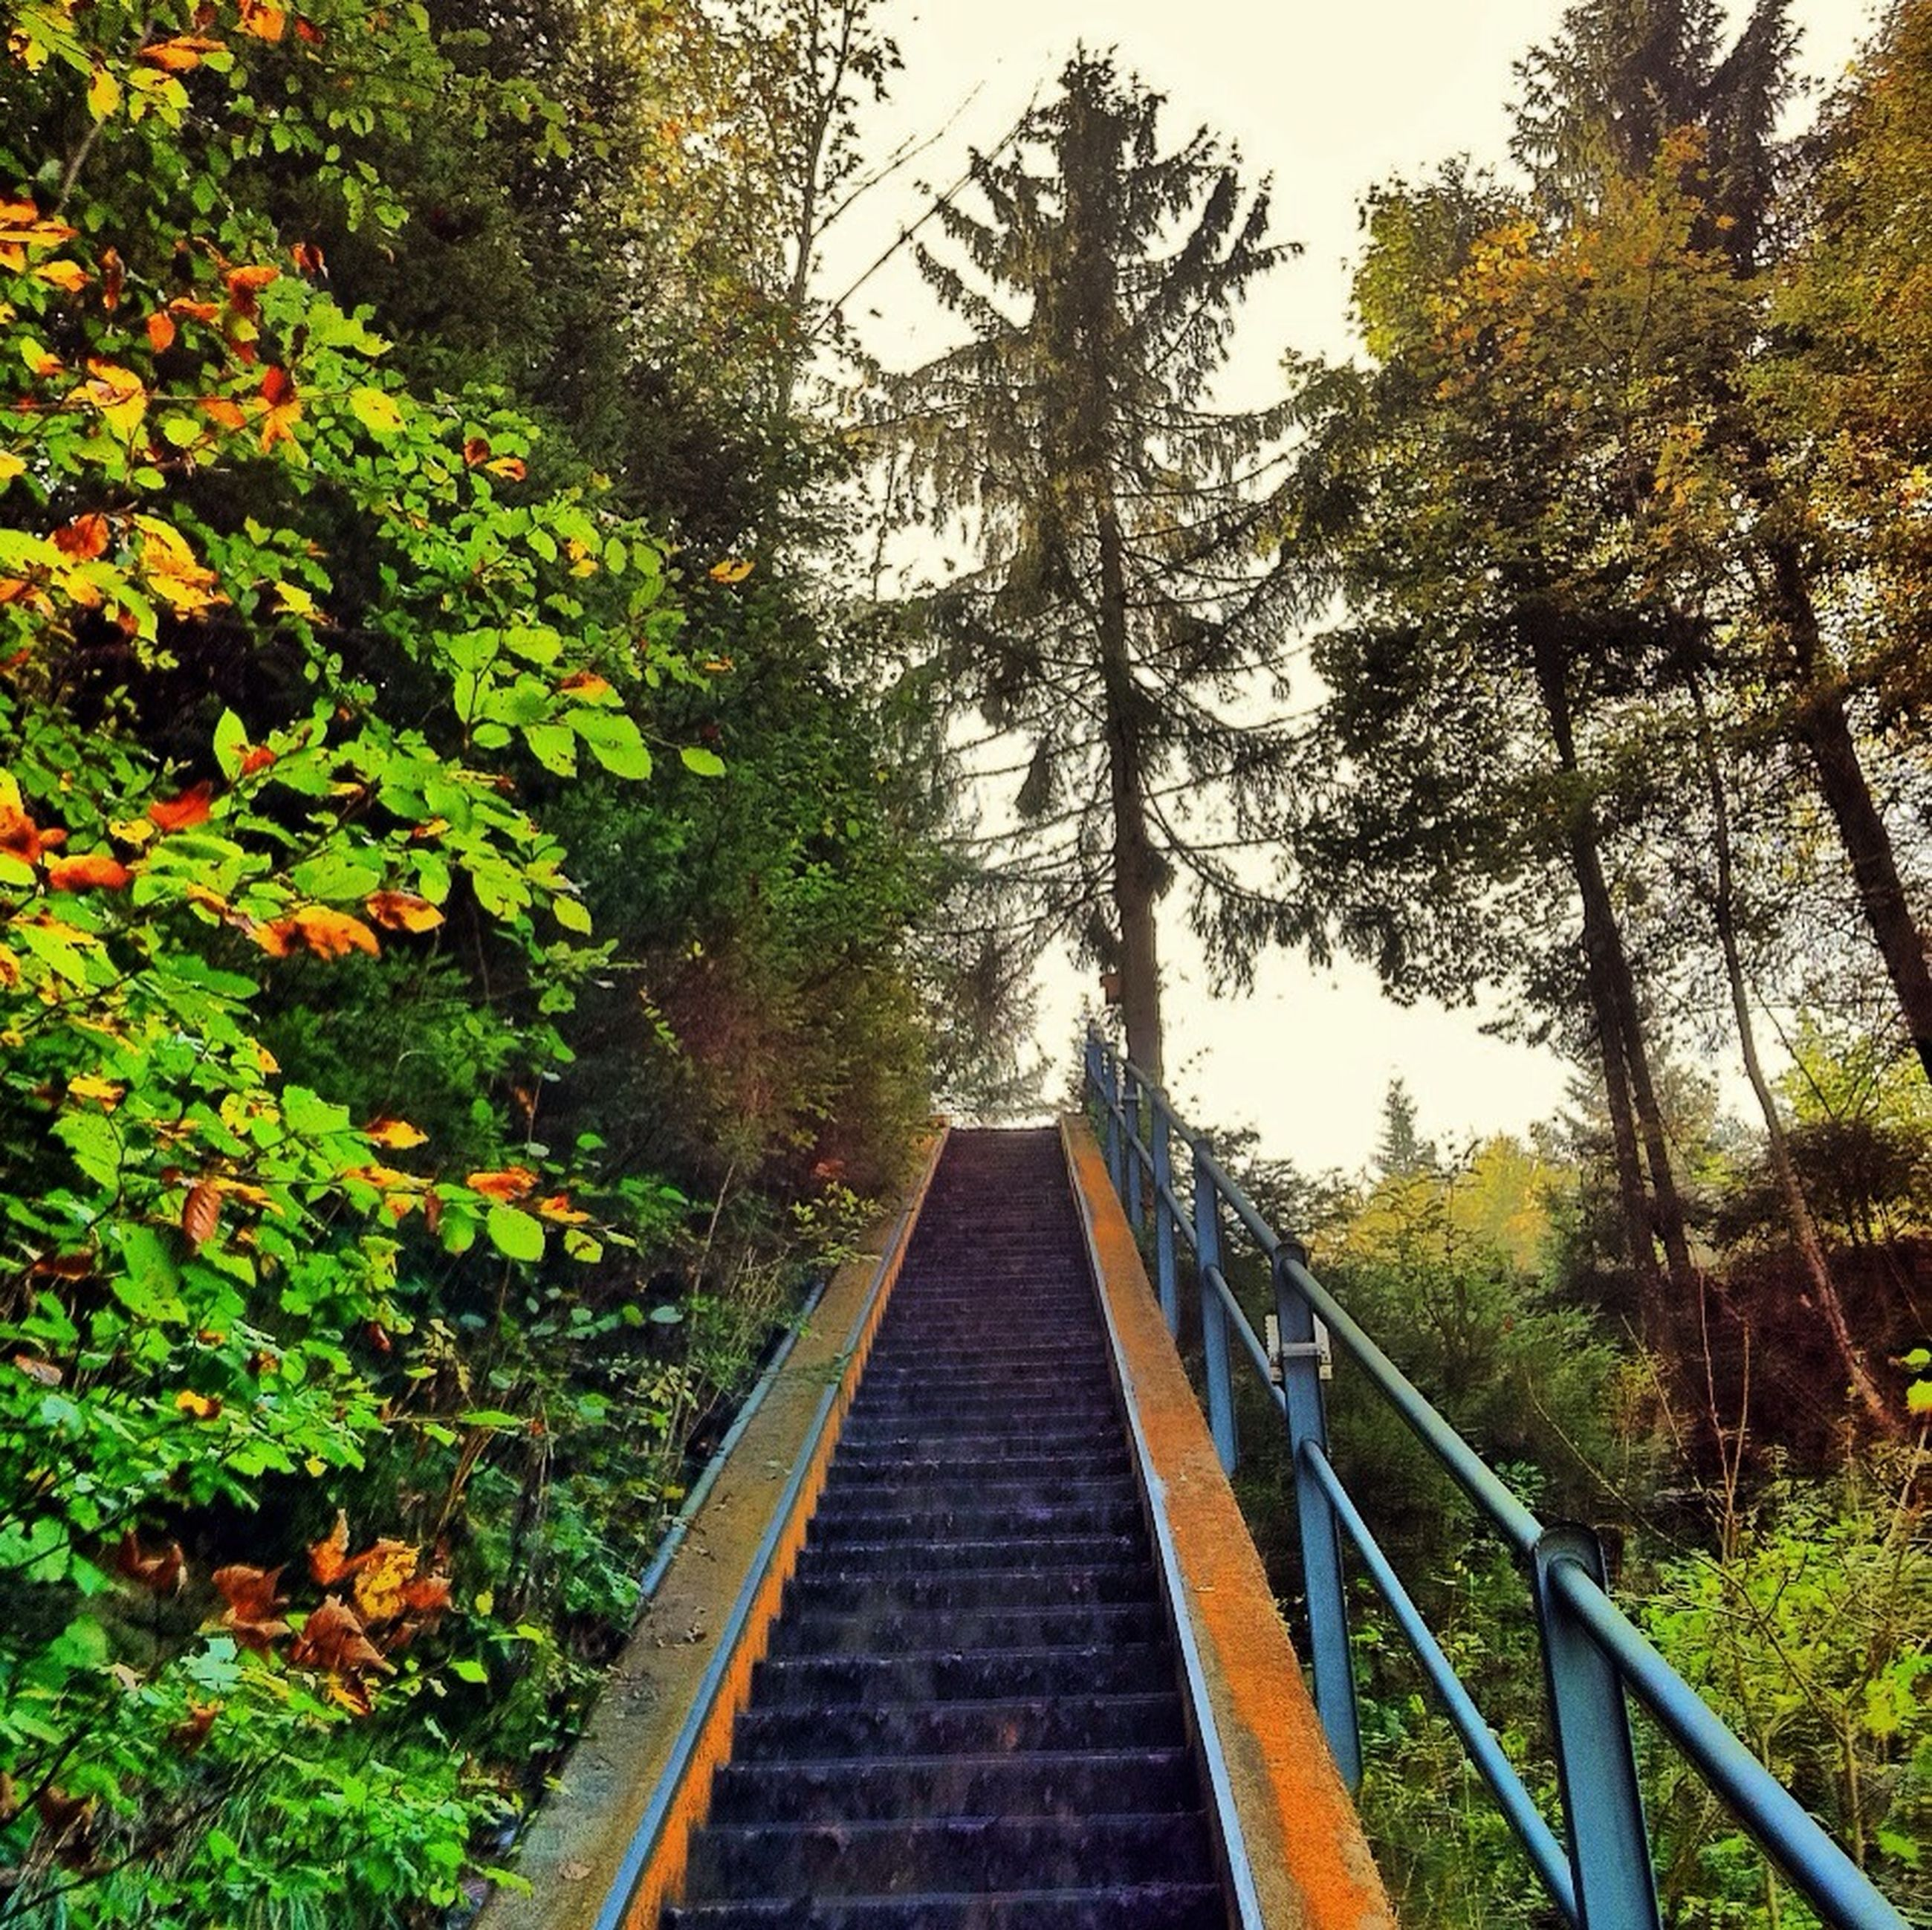 tree, the way forward, railing, growth, built structure, diminishing perspective, footbridge, steps, architecture, vanishing point, nature, plant, day, connection, railroad track, steps and staircases, tranquility, forest, outdoors, no people